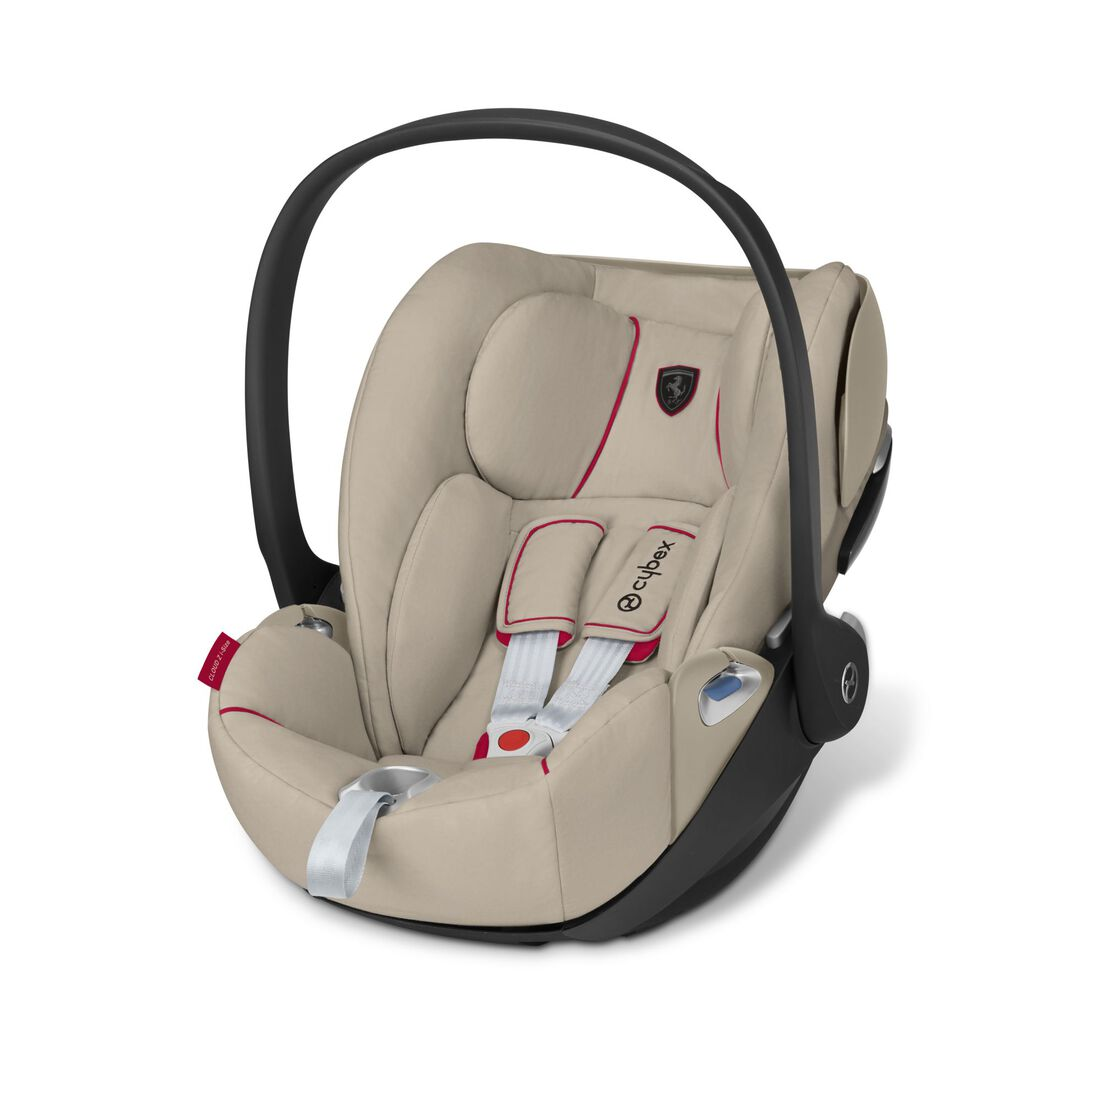 CYBEX Cloud Z i-Size - Ferrari Silver Grey in Ferrari Silver Grey large Bild 2